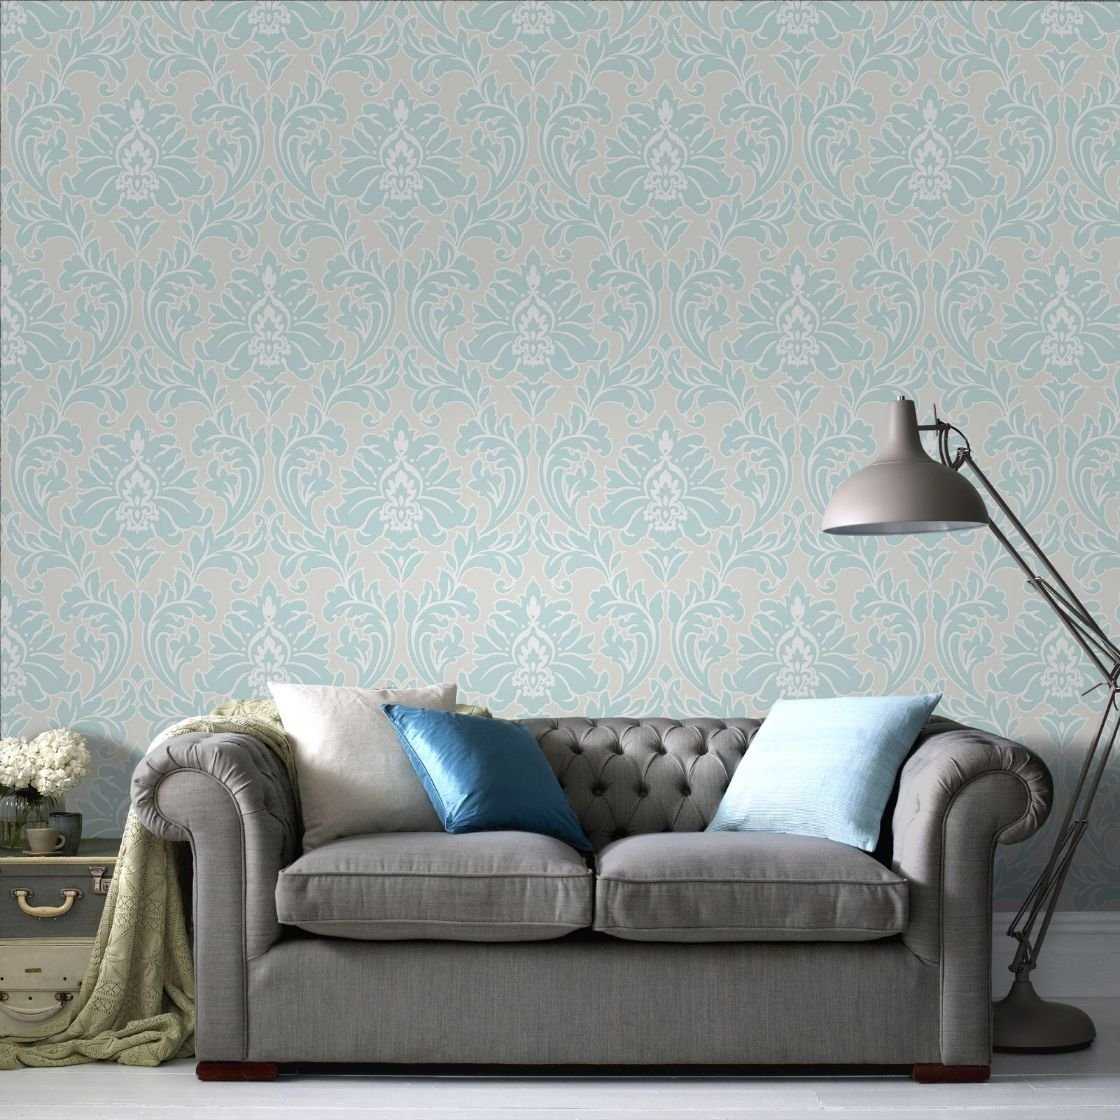 Superfresco Easy Paste the Wall Majestic Damask Print Duck Egg ...